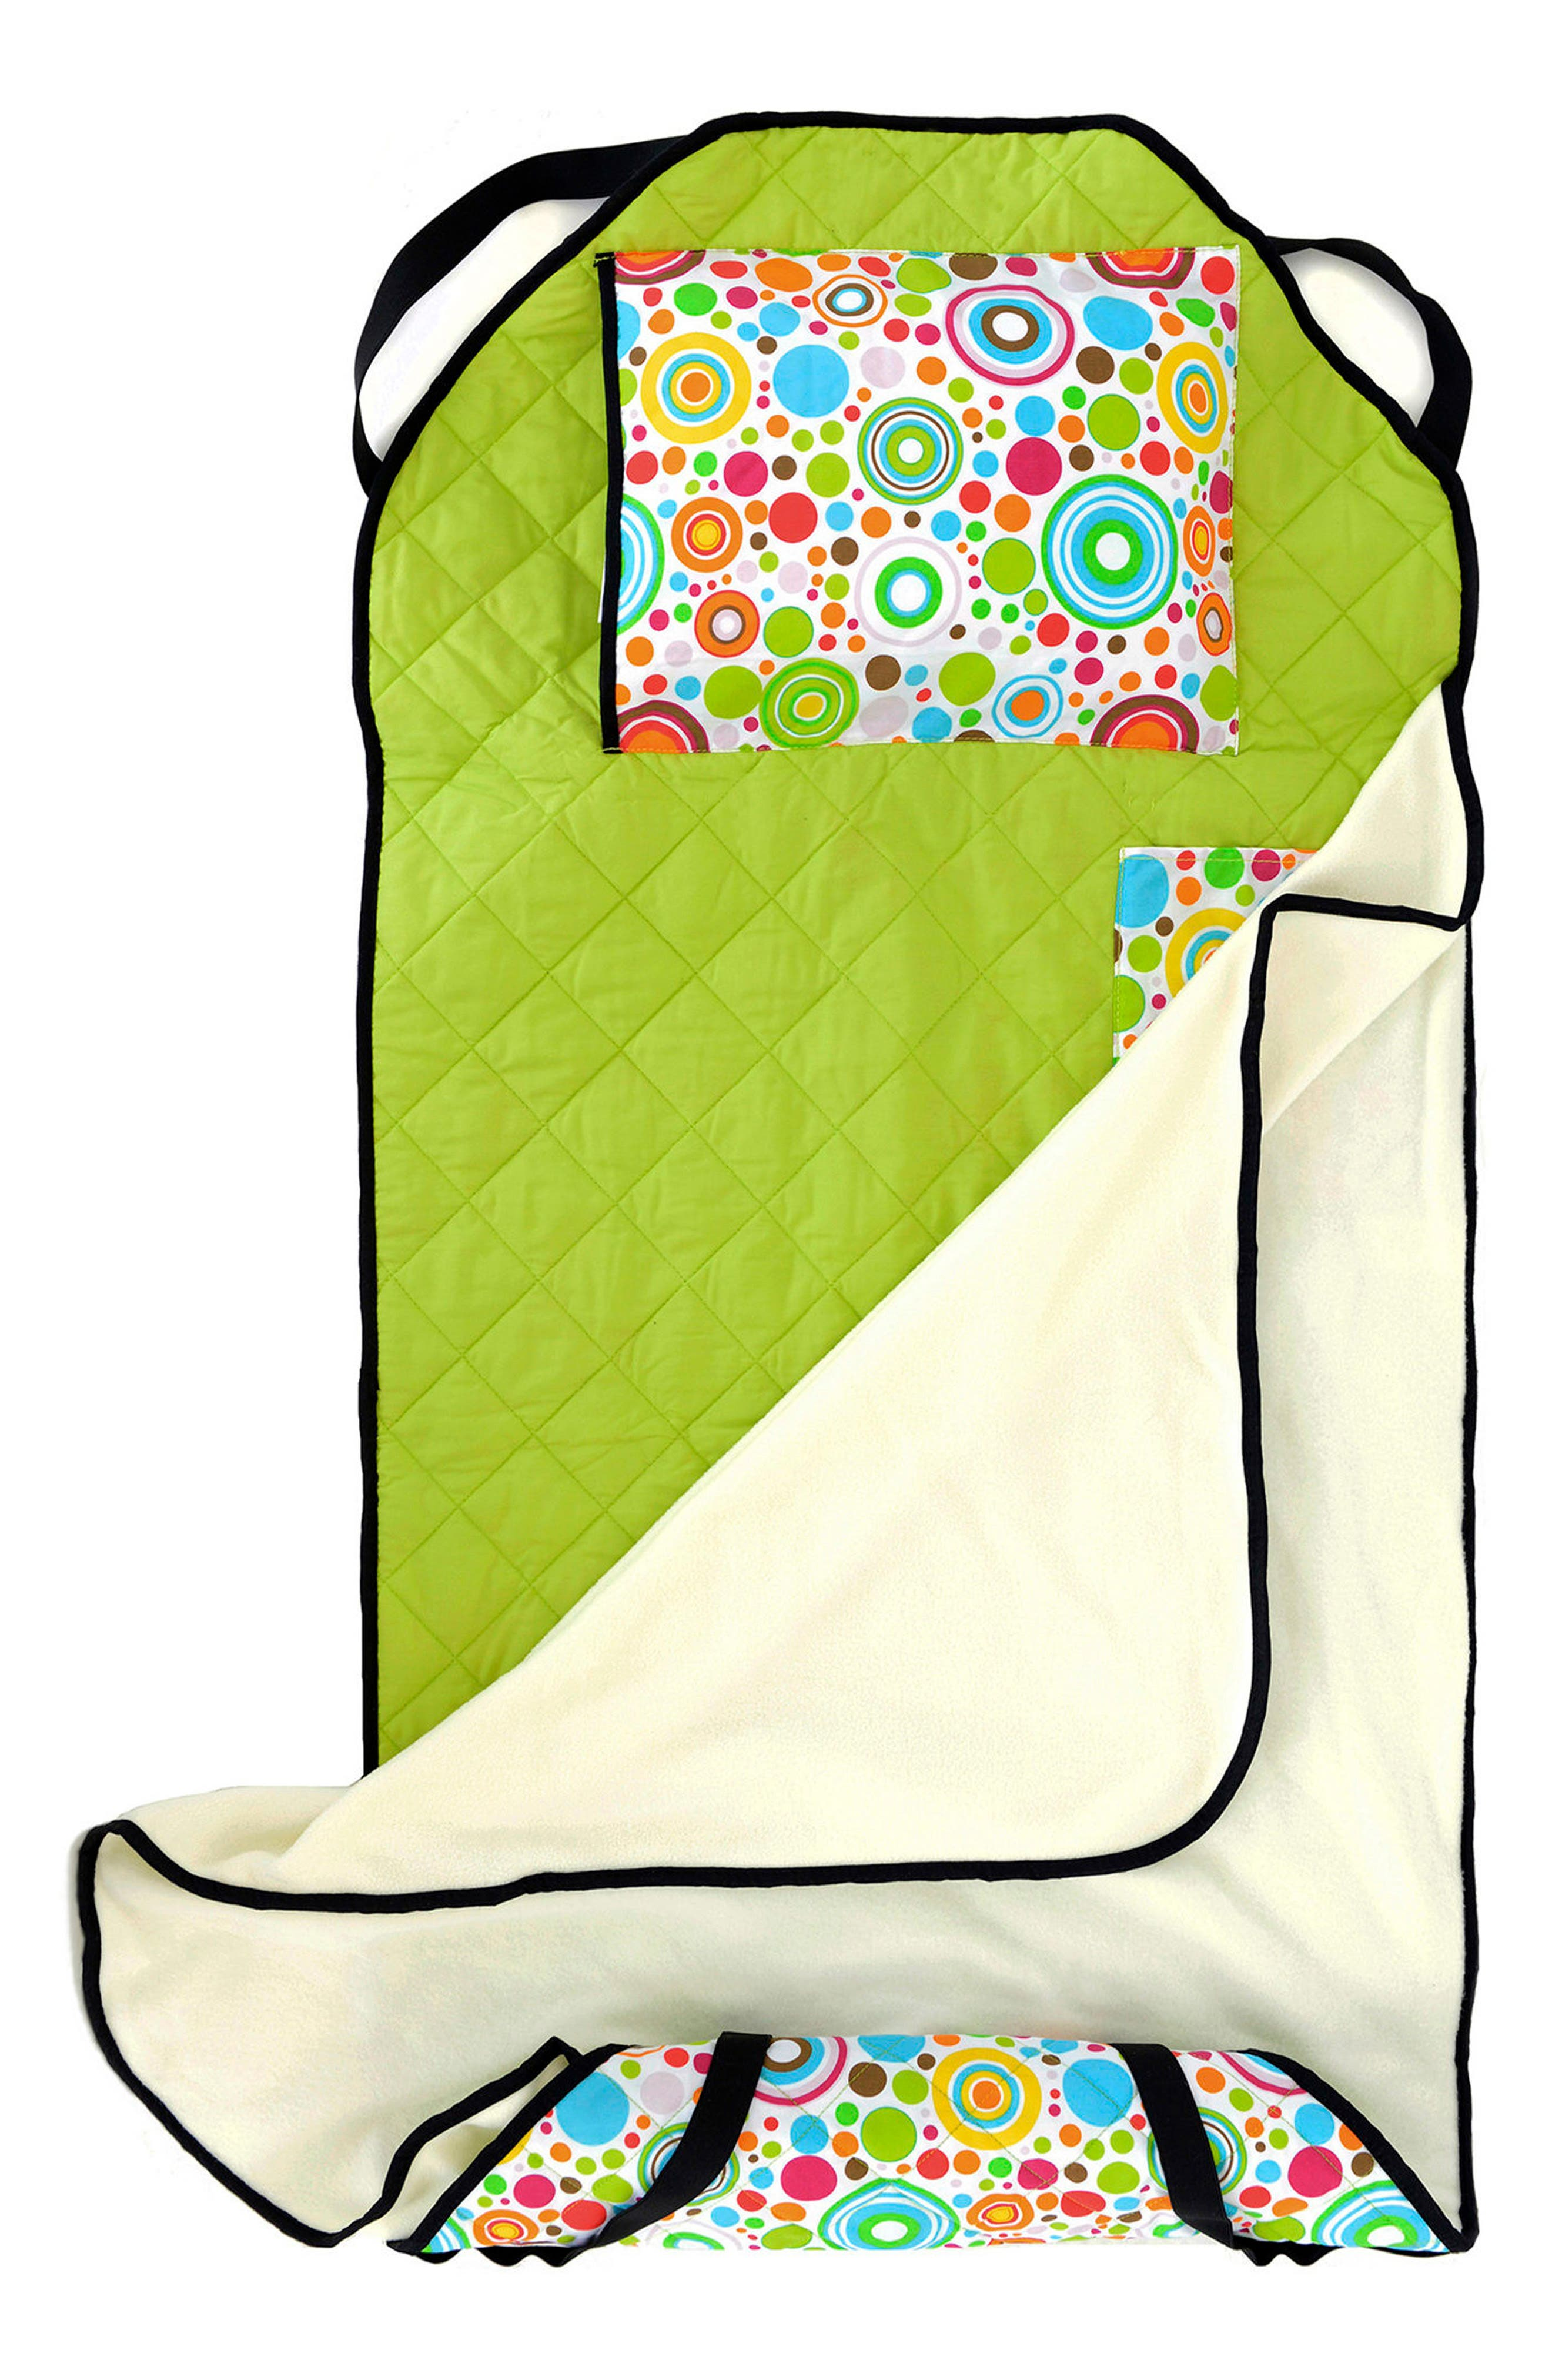 Alternate Image 1 Selected - Urban Infant Tot Cot® Portable Nap Cot Bedding